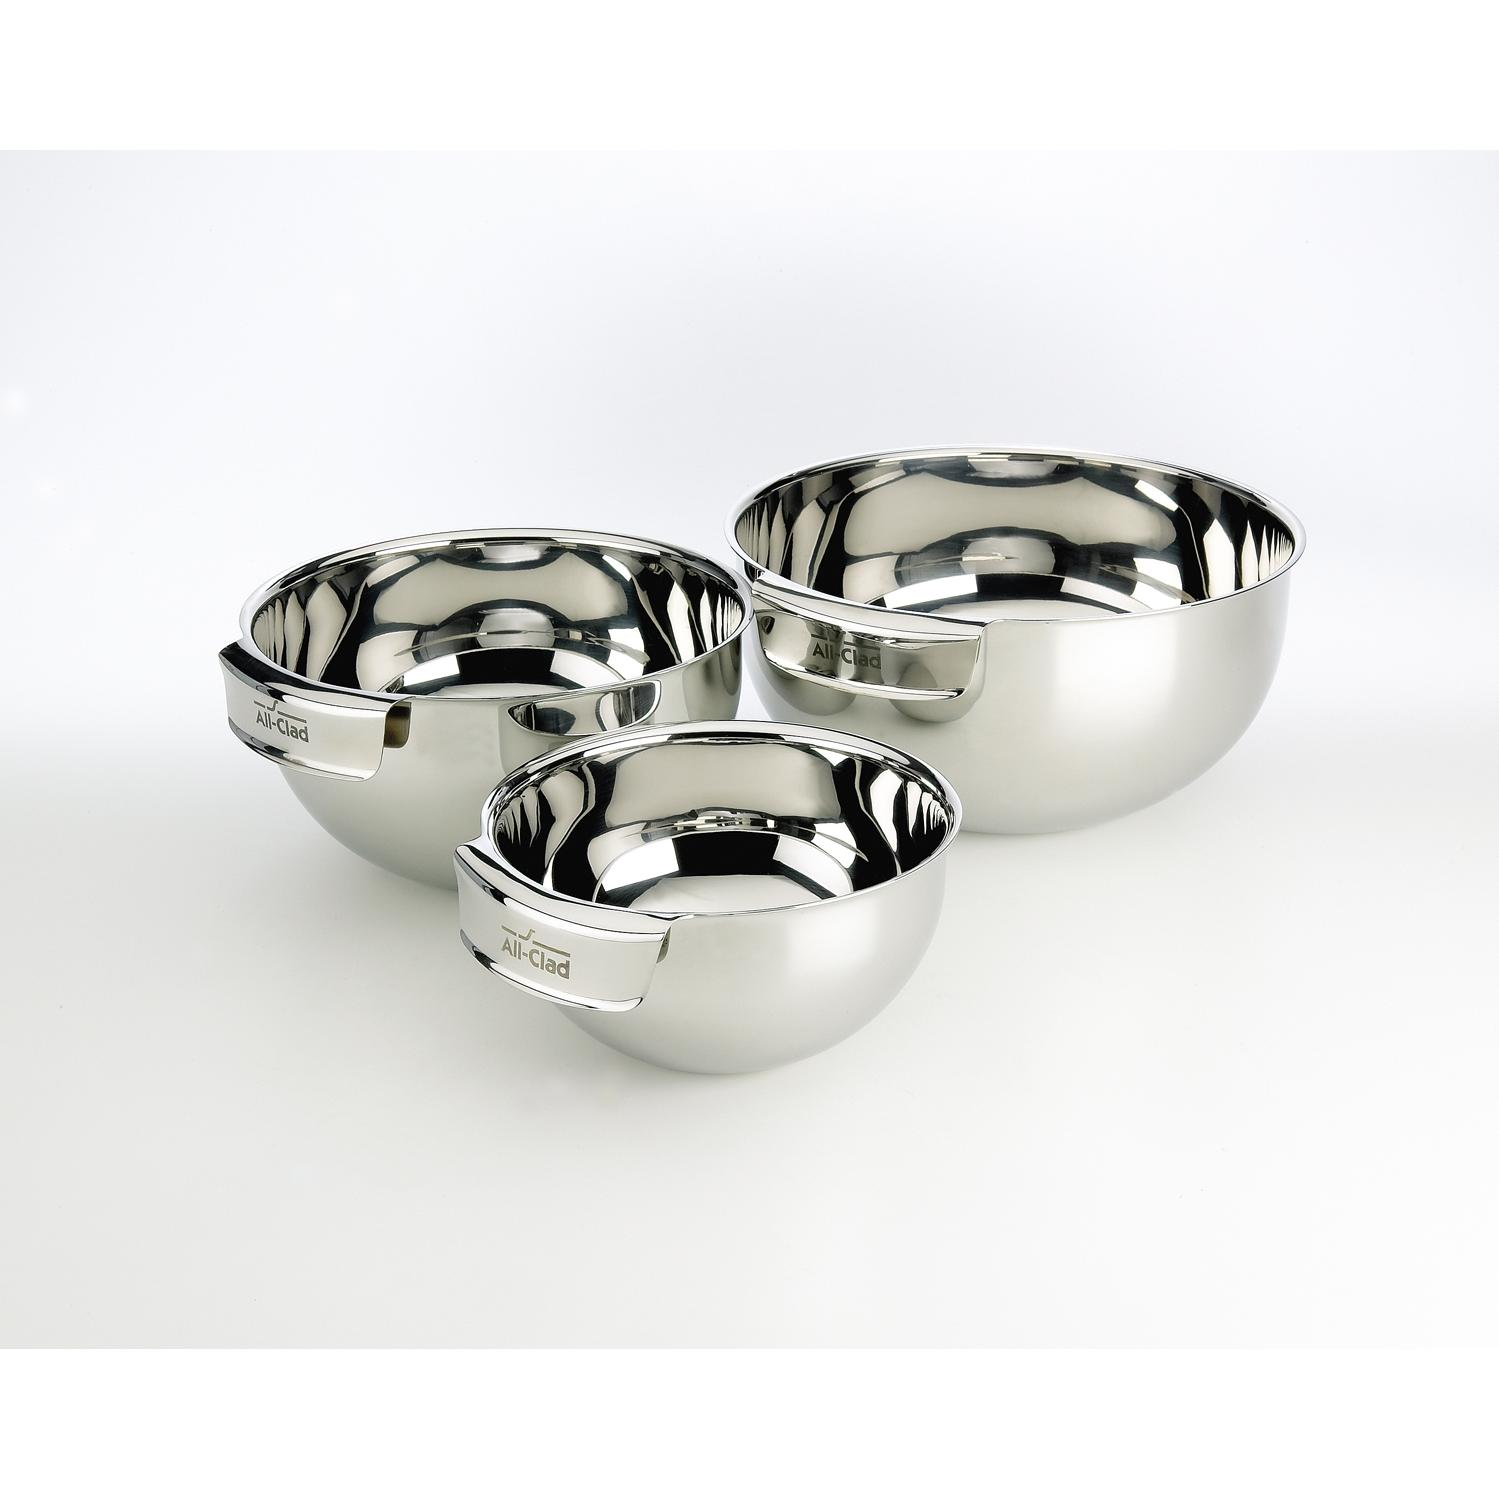 All-Clad Stainless Mixing Bowl Set